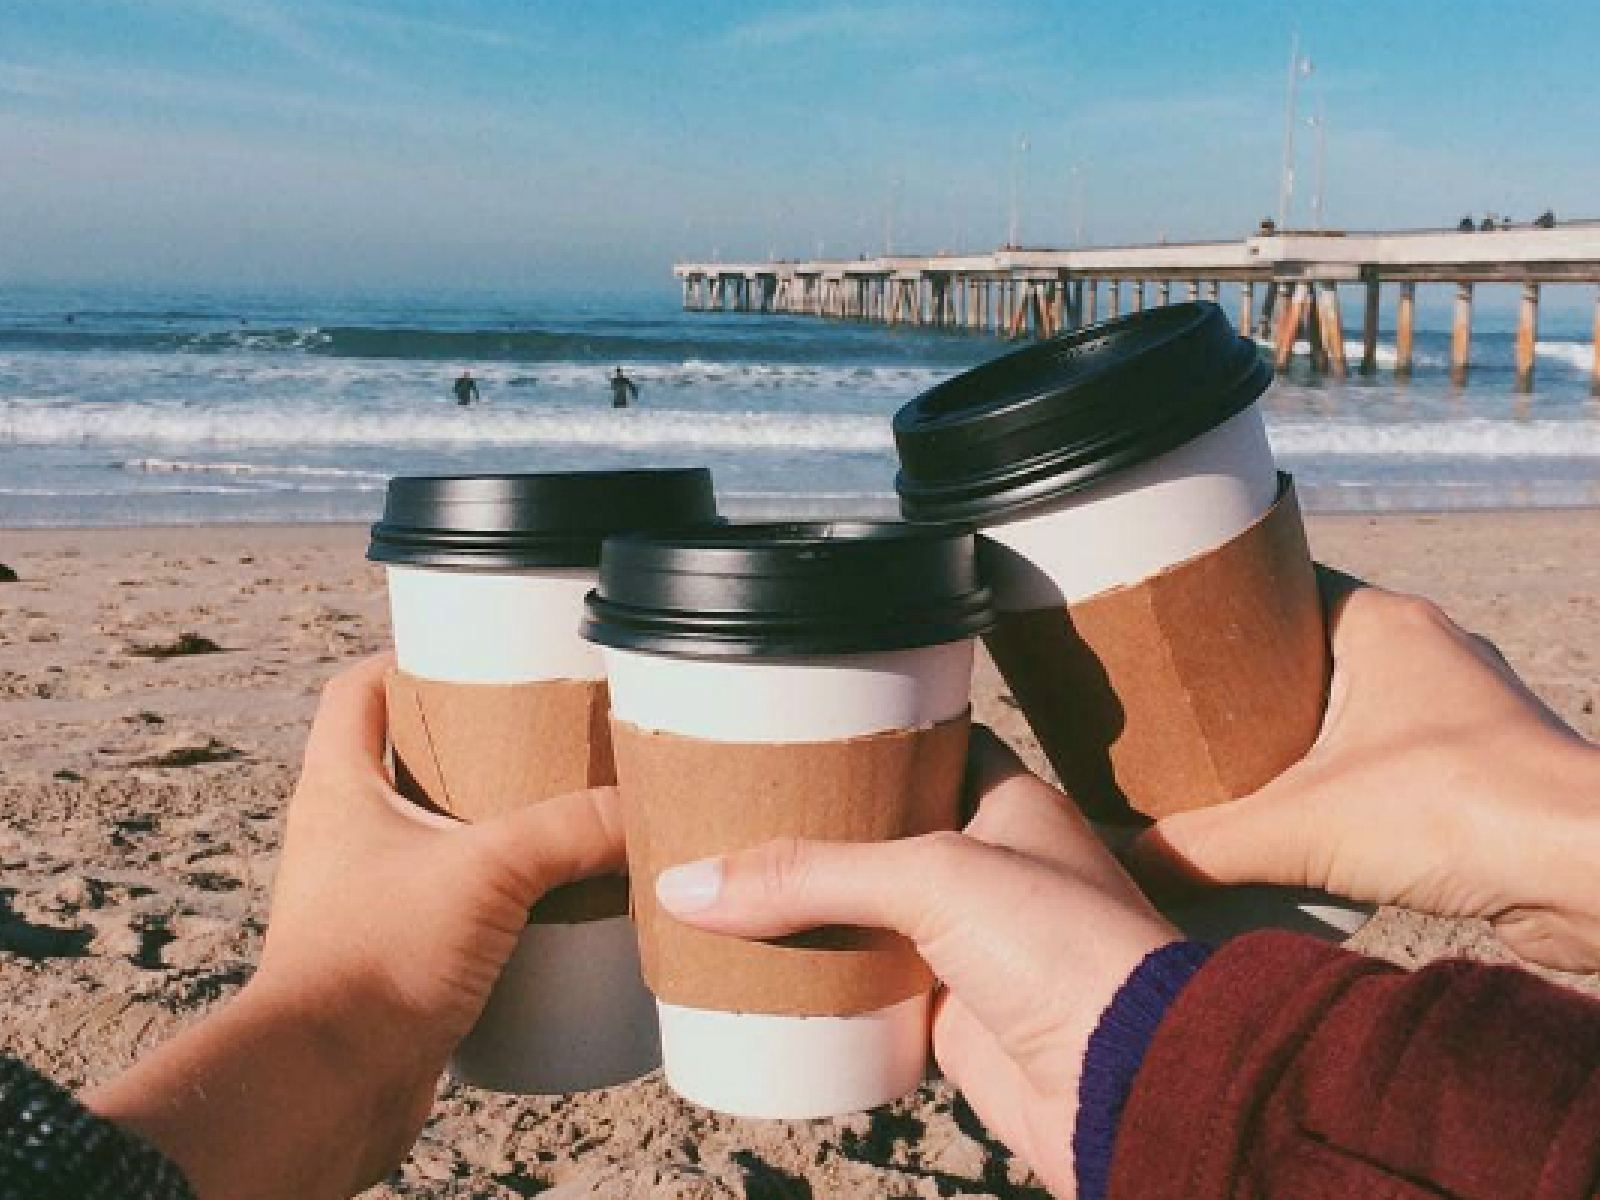 Coffee on the beach from The Cow's End Cafe l Instagram by @washingtonsquarevenice